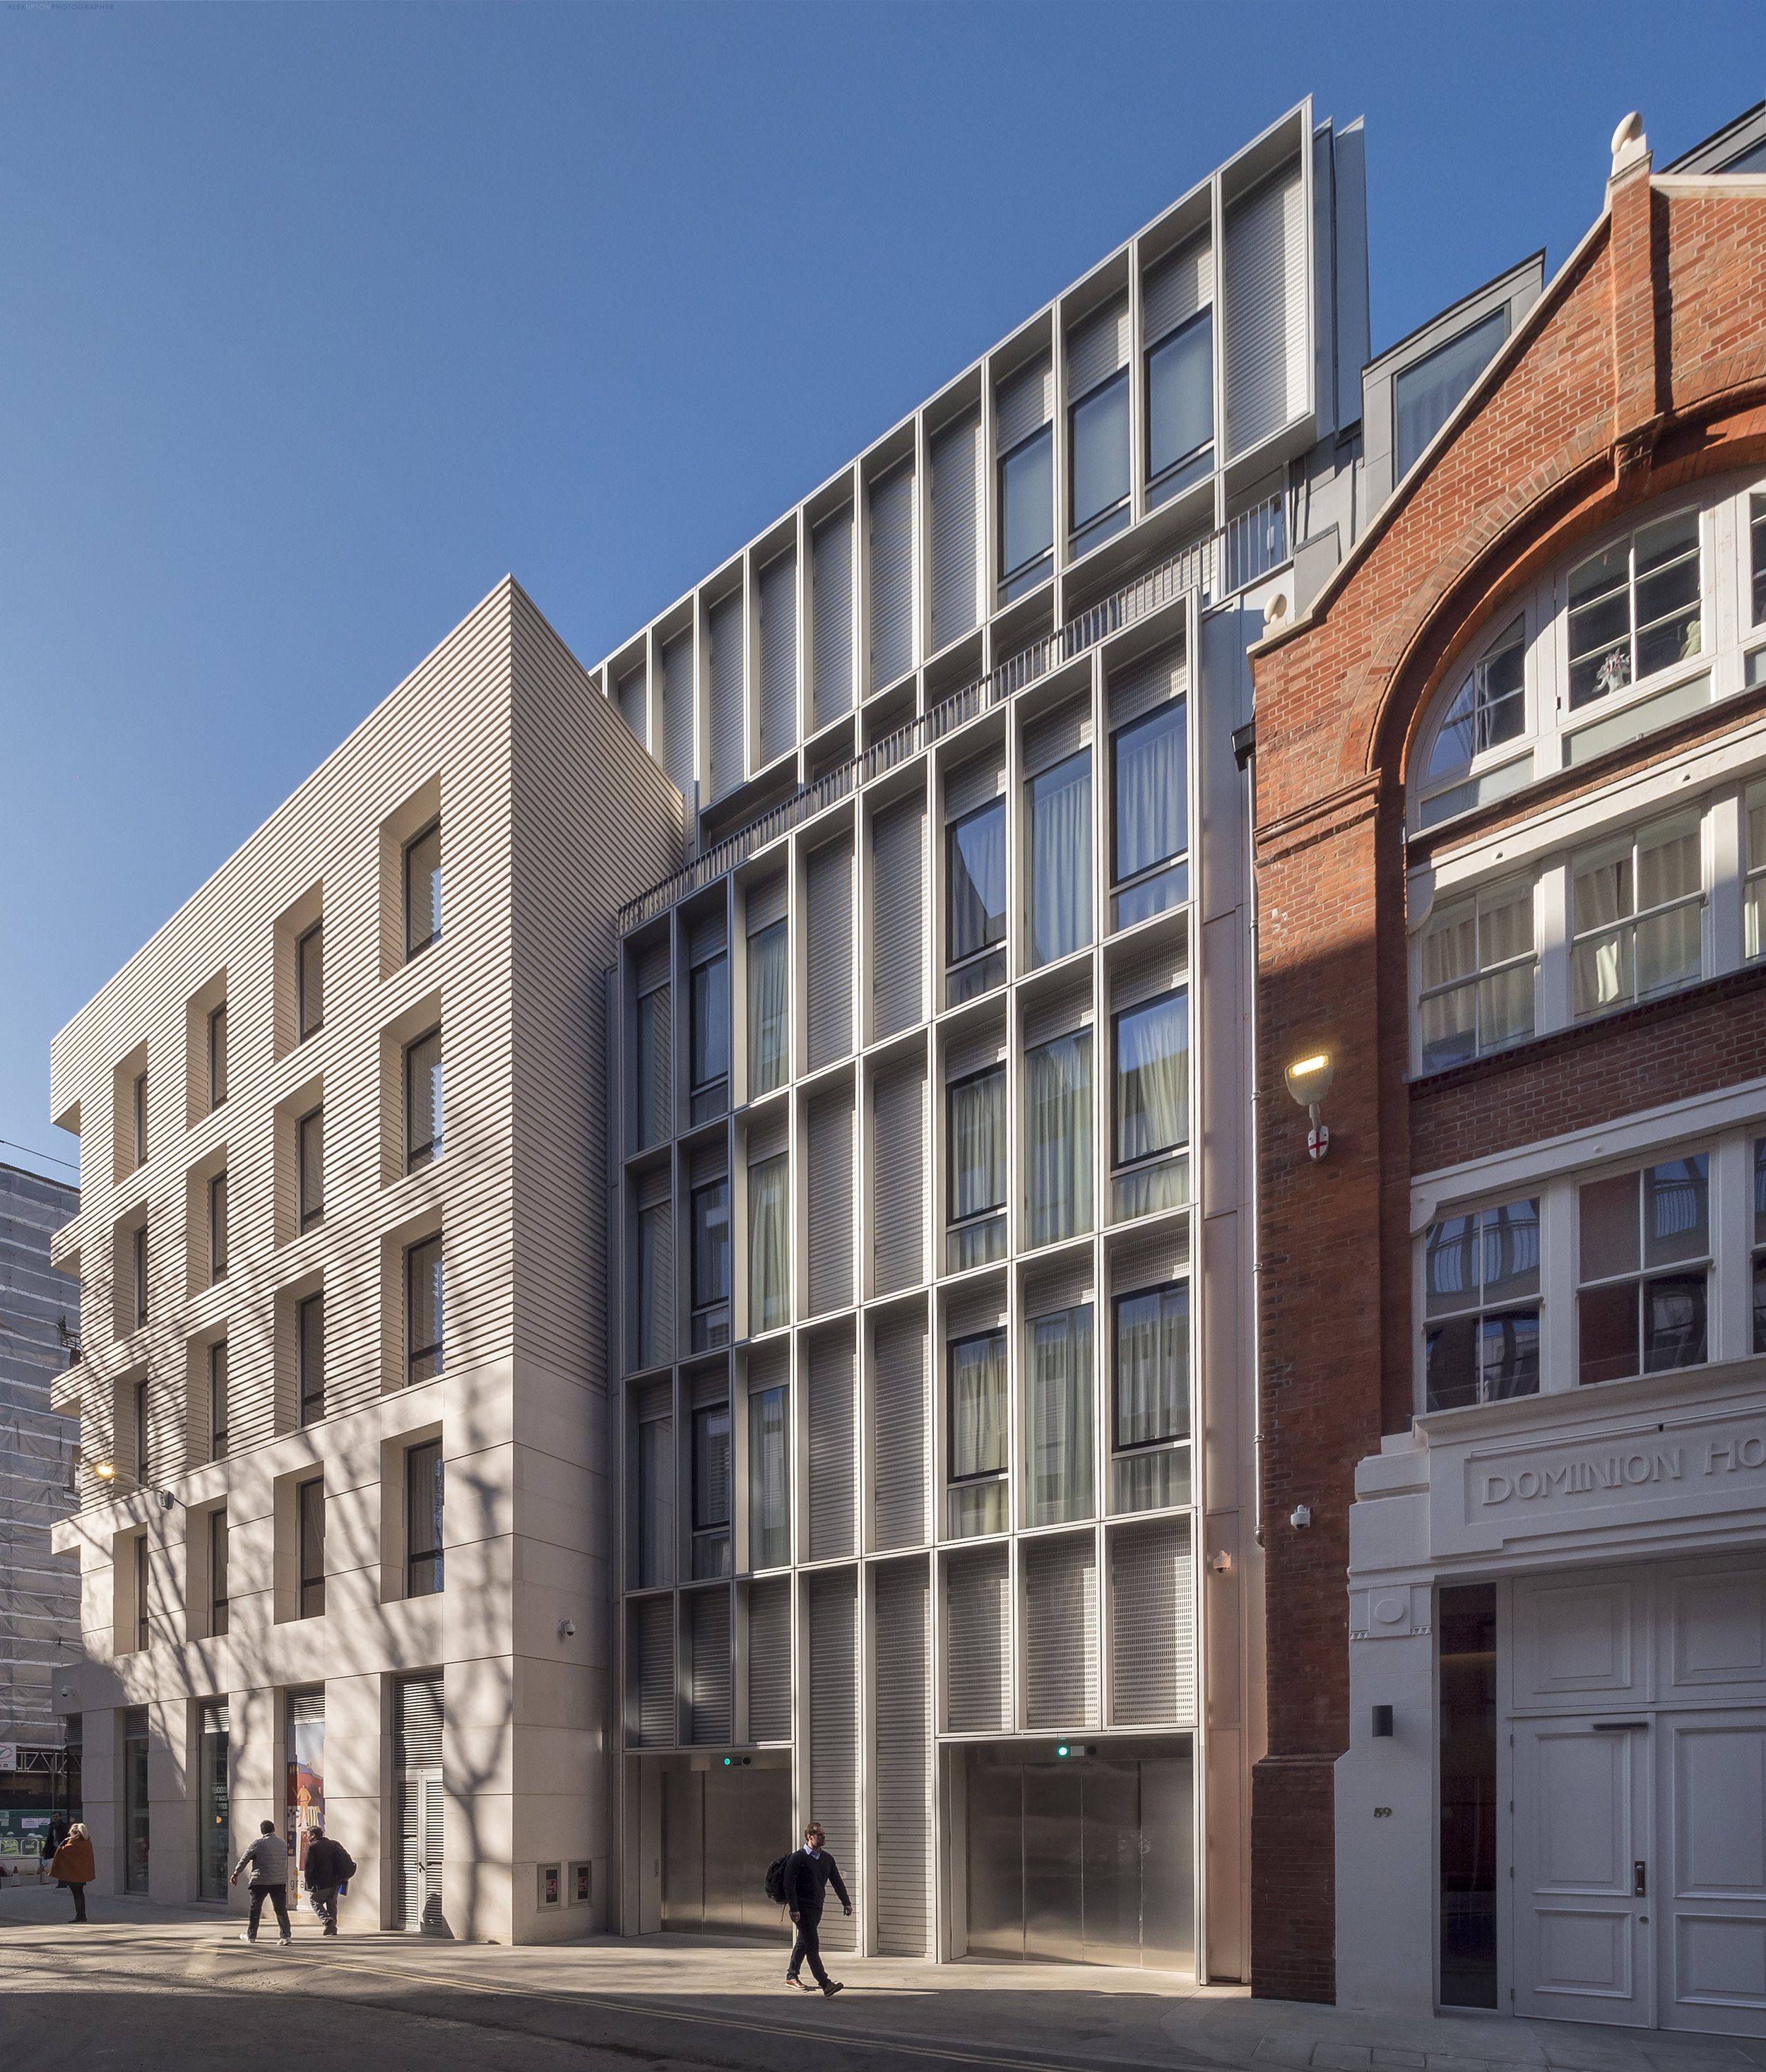 Contrasting the old and new architectural details that form the facade of the Barts Square residencies.